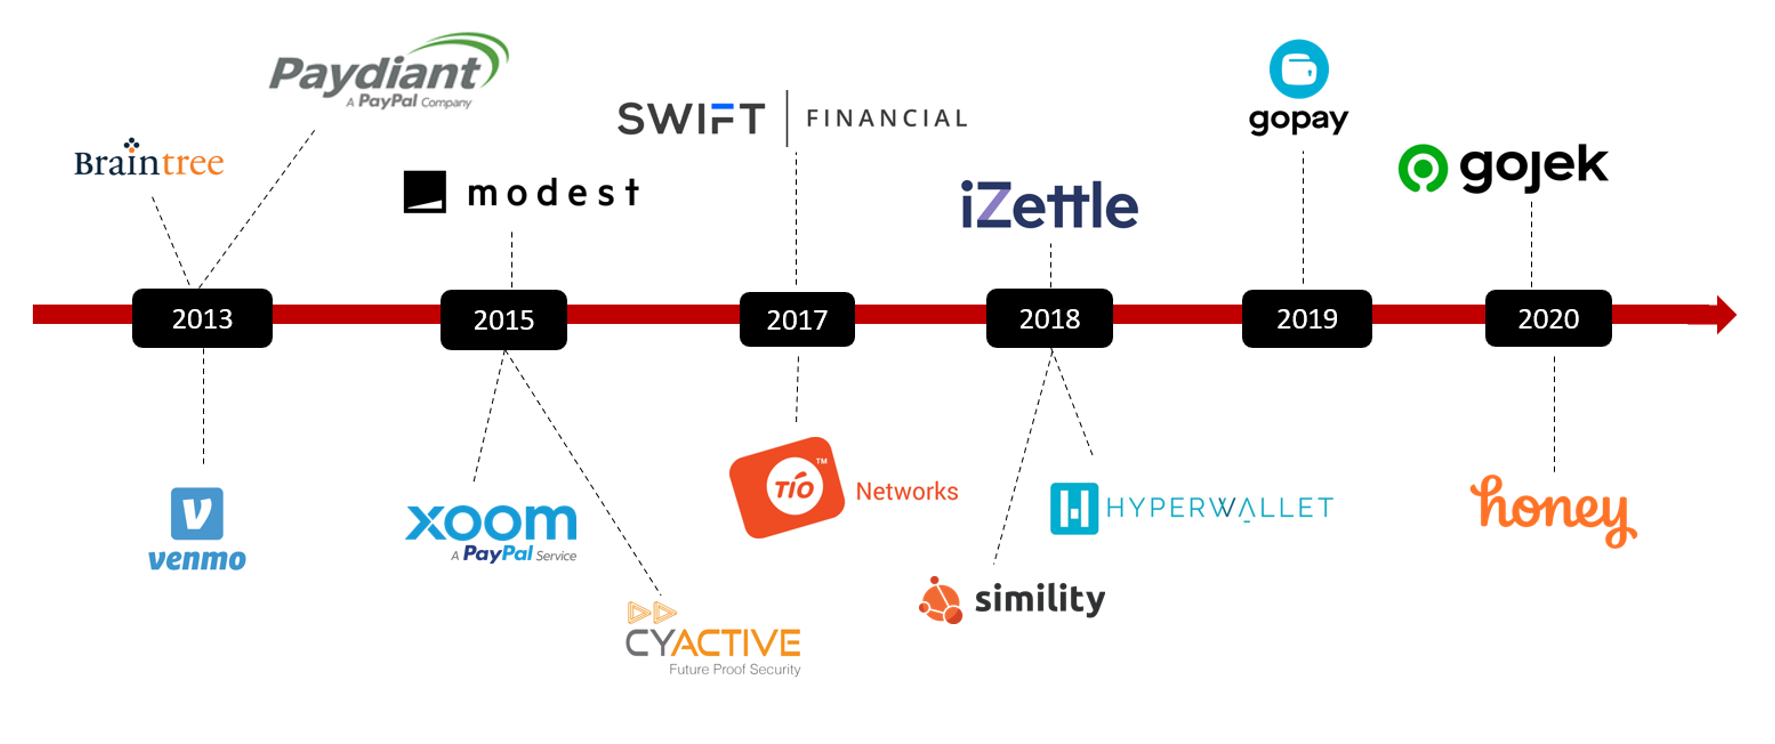 Counterpoint-Partnerships & Acquisitions of PayPal